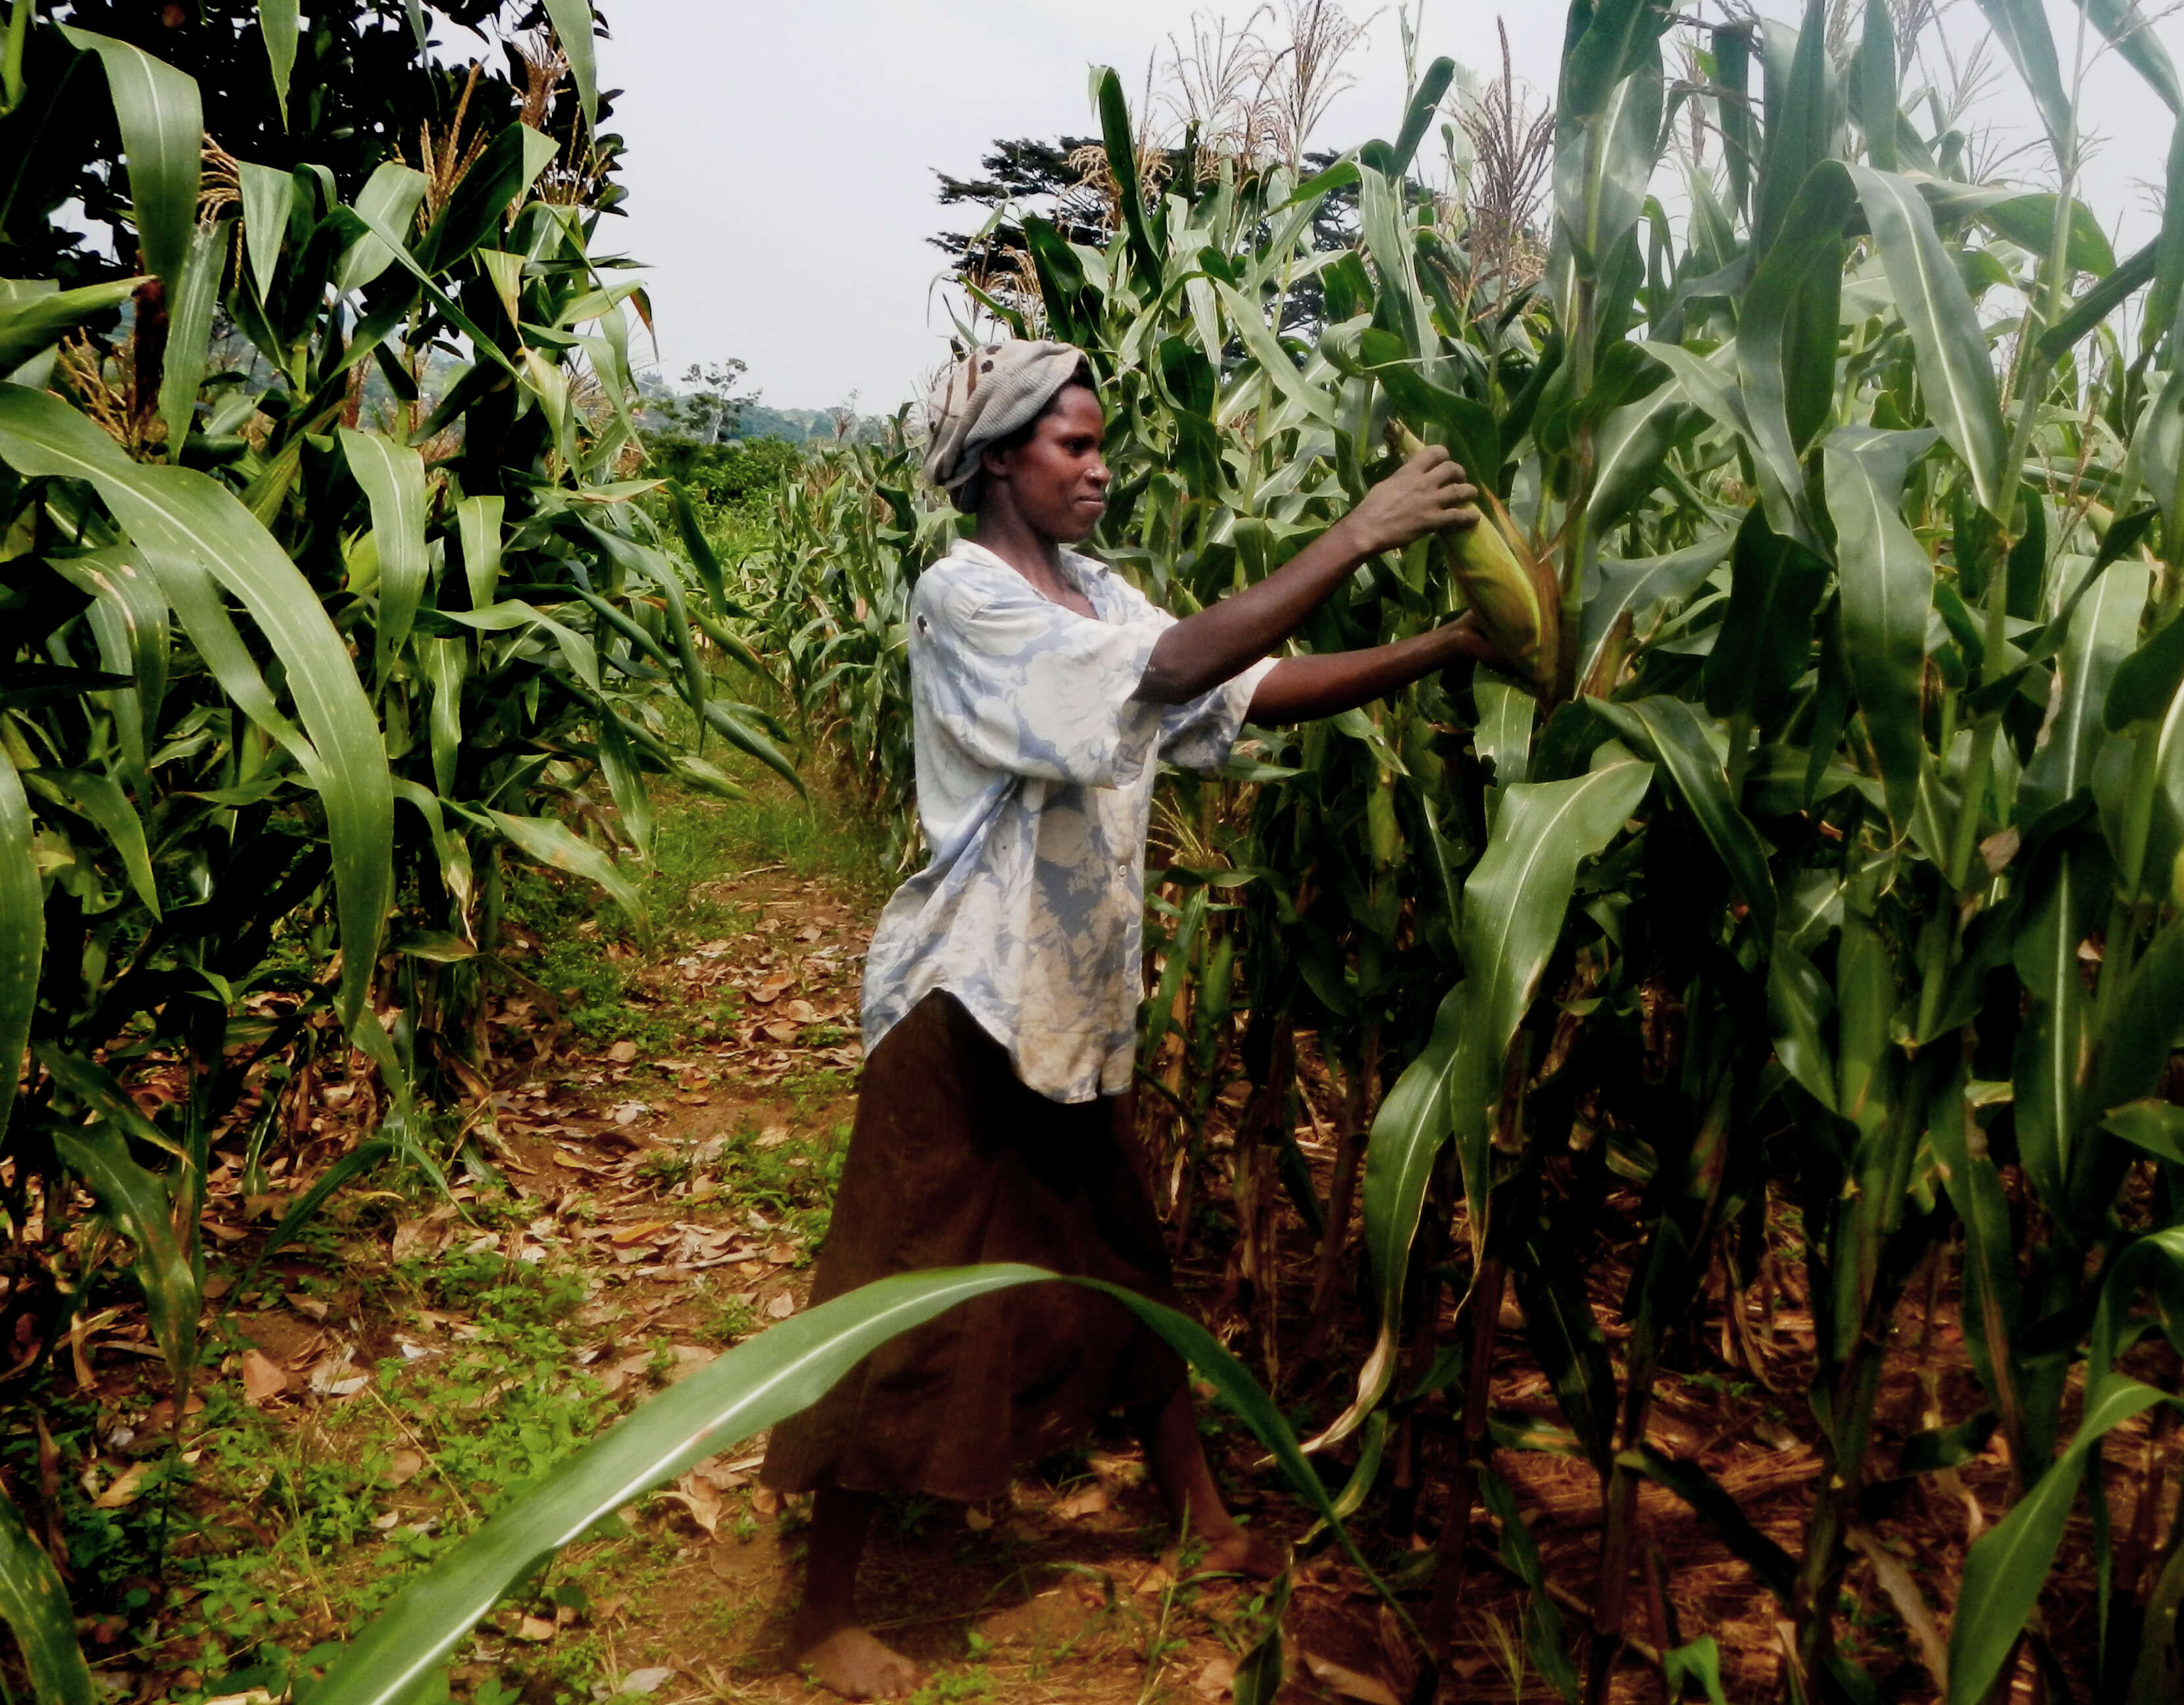 Viewpoint: Developing world farmers see GMO crop adoption as